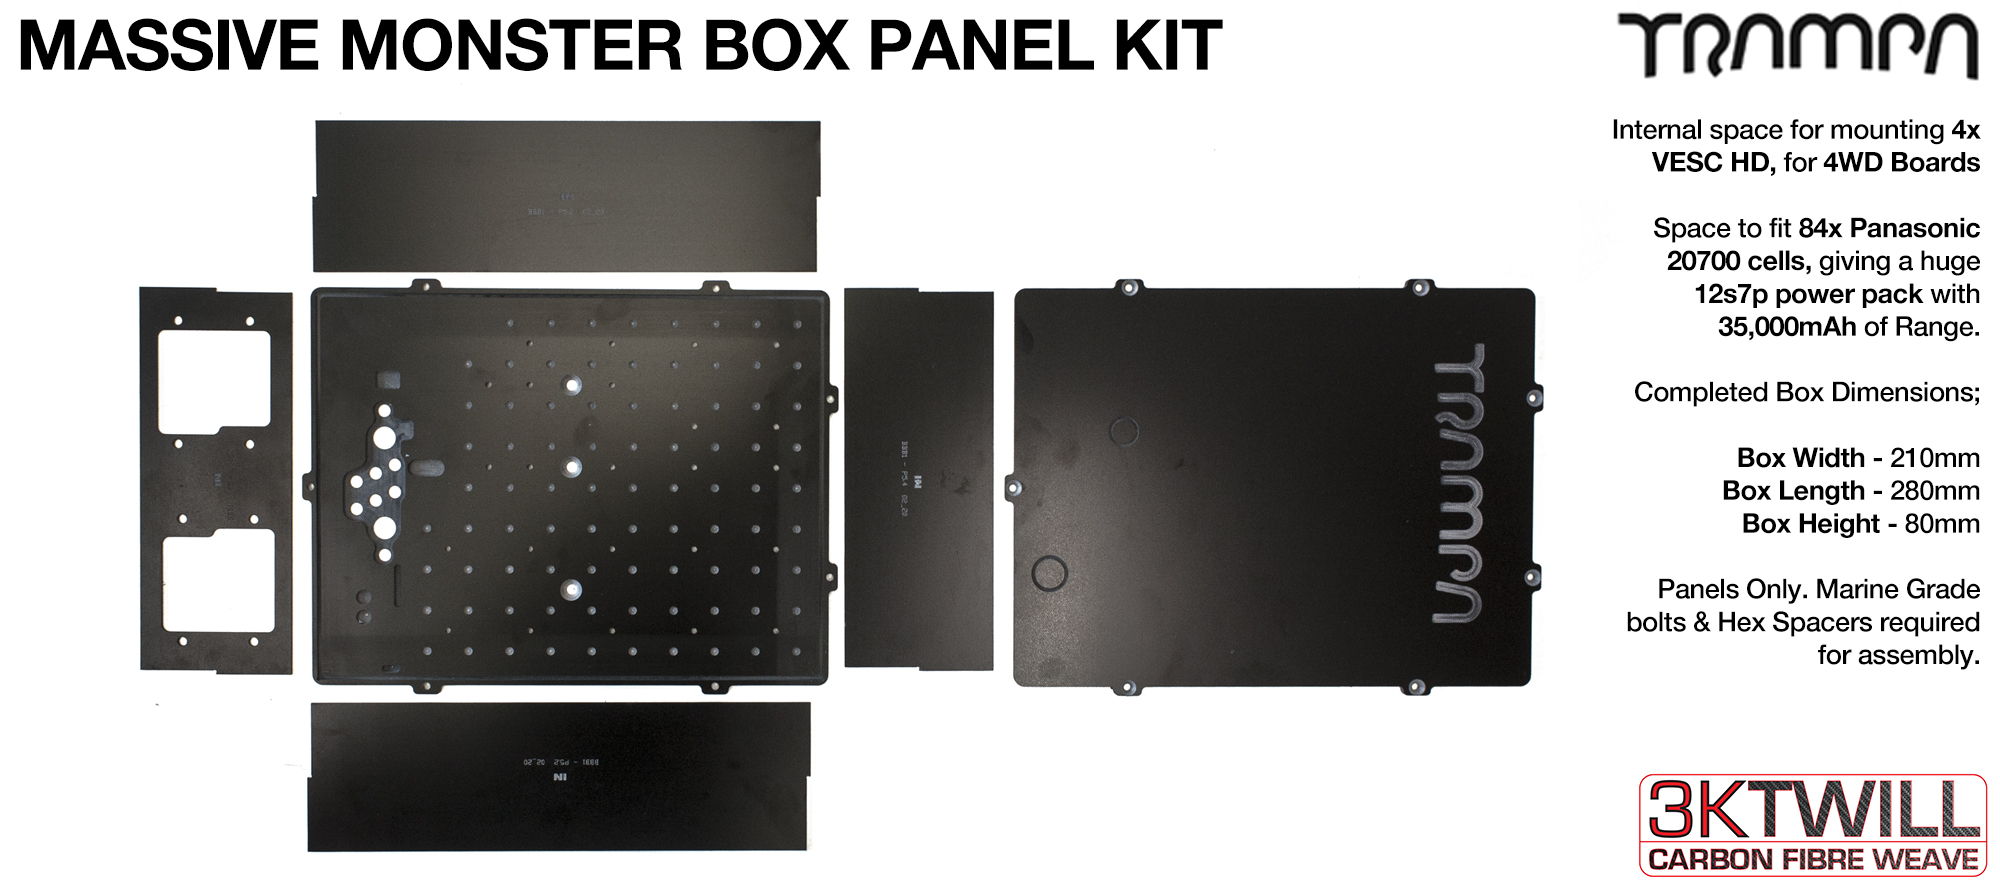 MASSIVE MONSTER Box 35A BATTERY PACK Complete Box Glass Fiber Panel Kit with internal chamber for upto 4x VESC HD